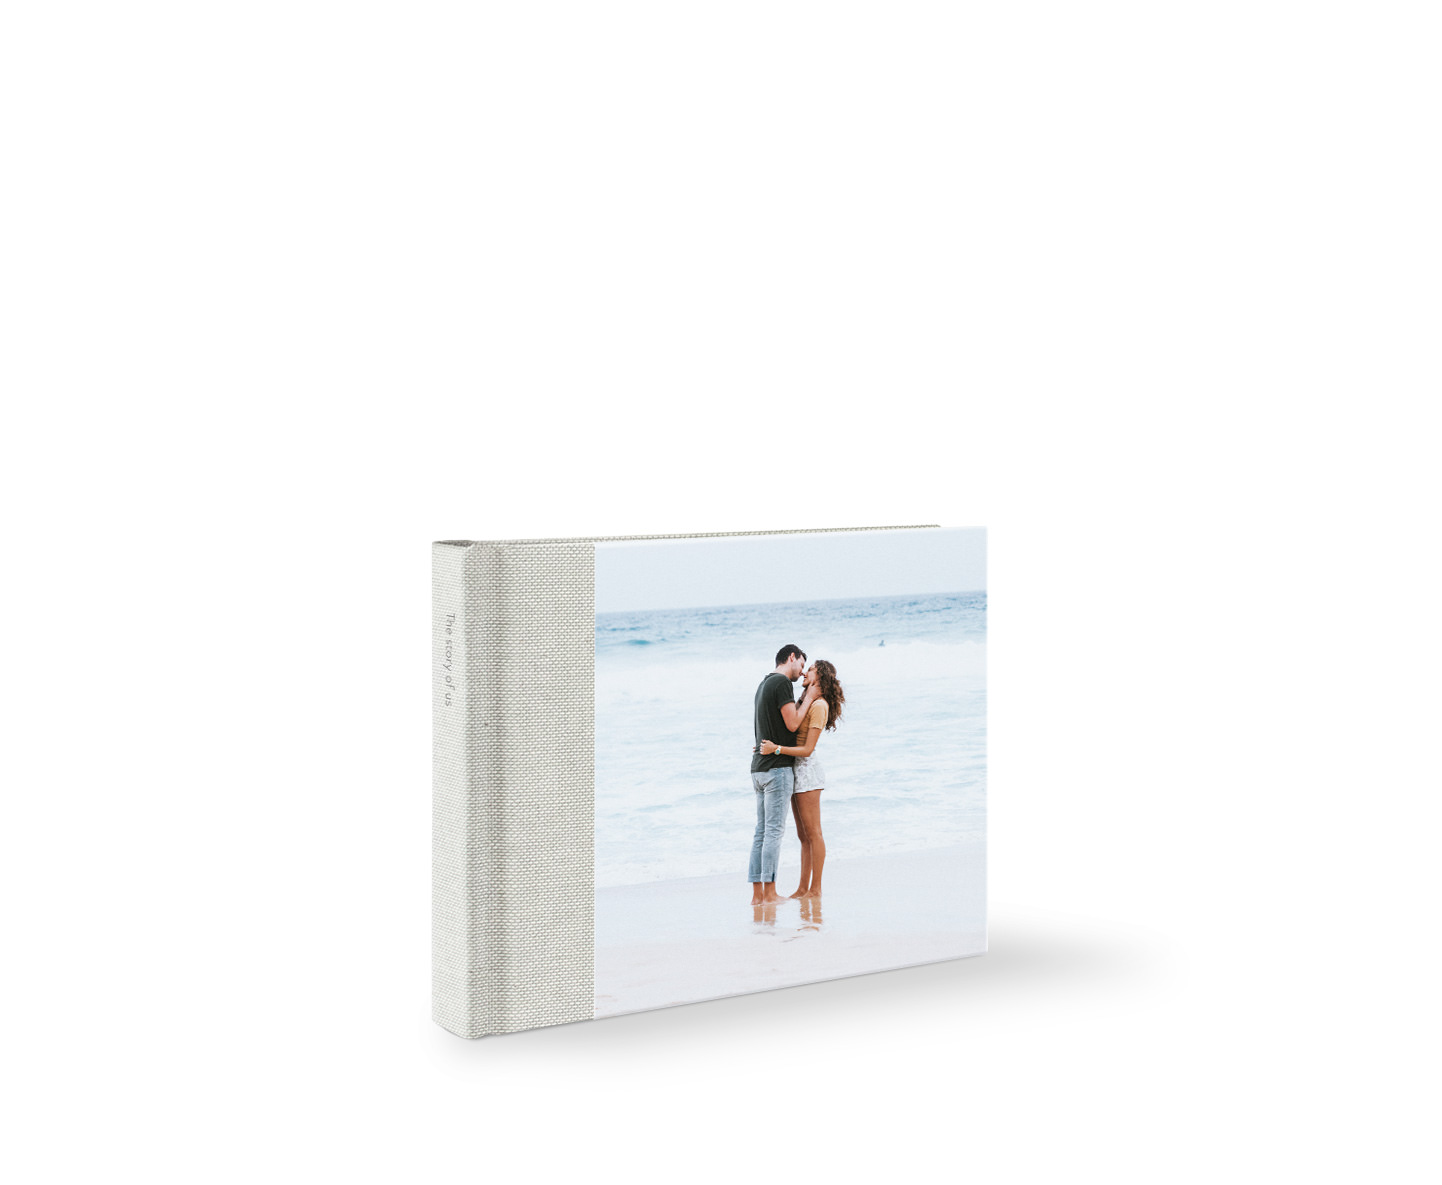 Premium medium landscape photo album with cover photo of a couple embracing on the beach